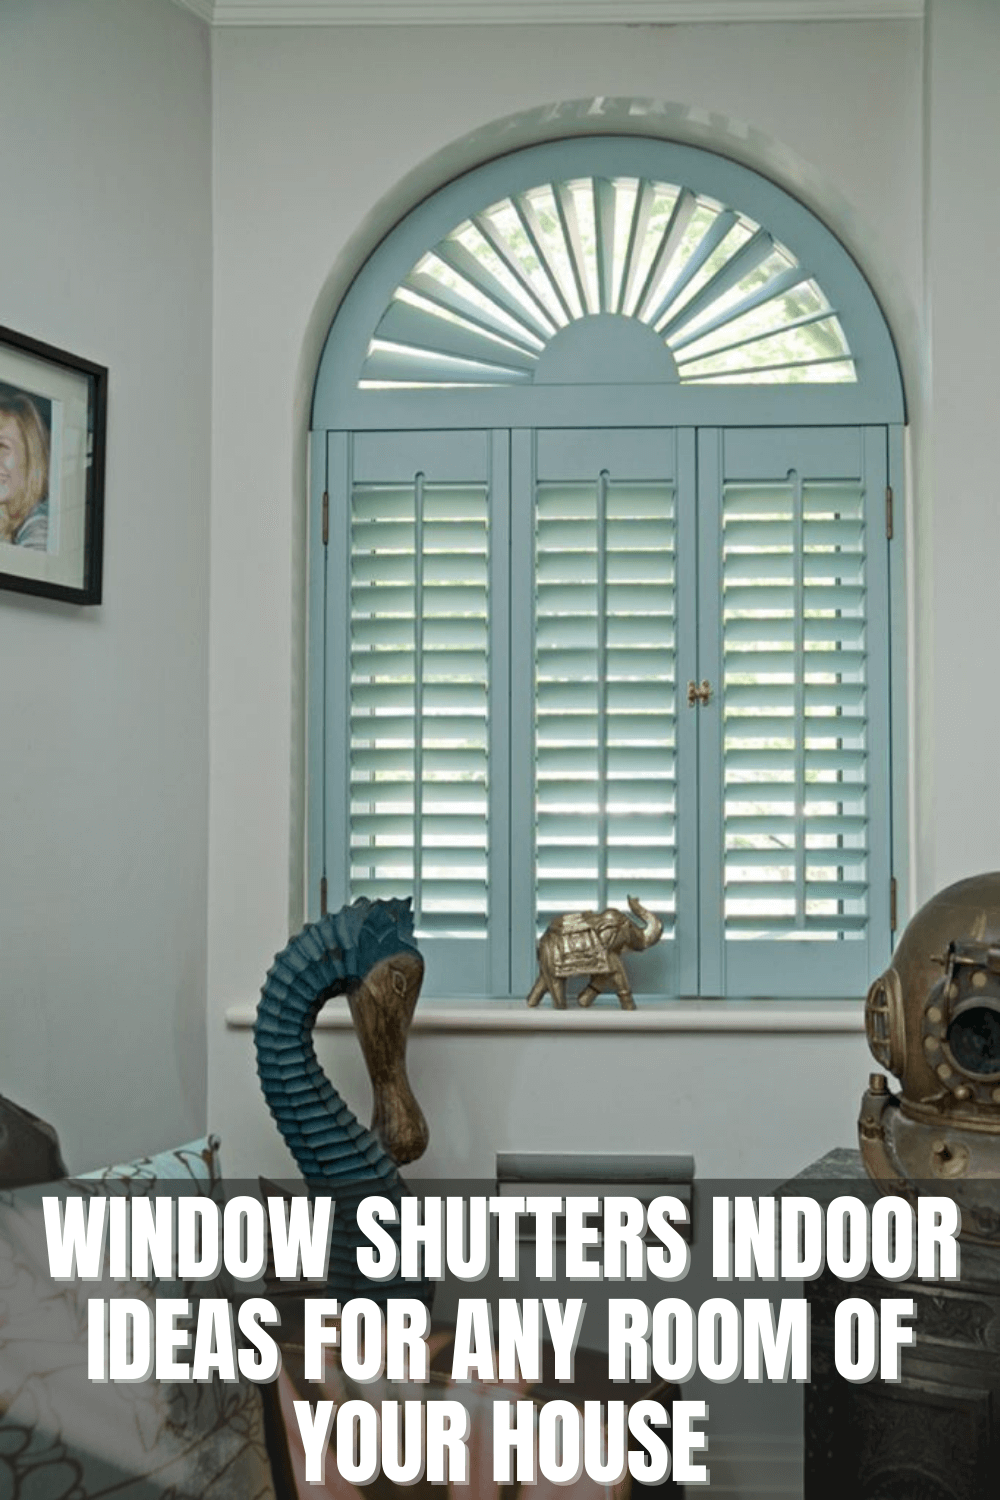 WINDOW SHUTTERS INDOOR IDEAS FOR ANY ROOM OF YOUR HOUSE